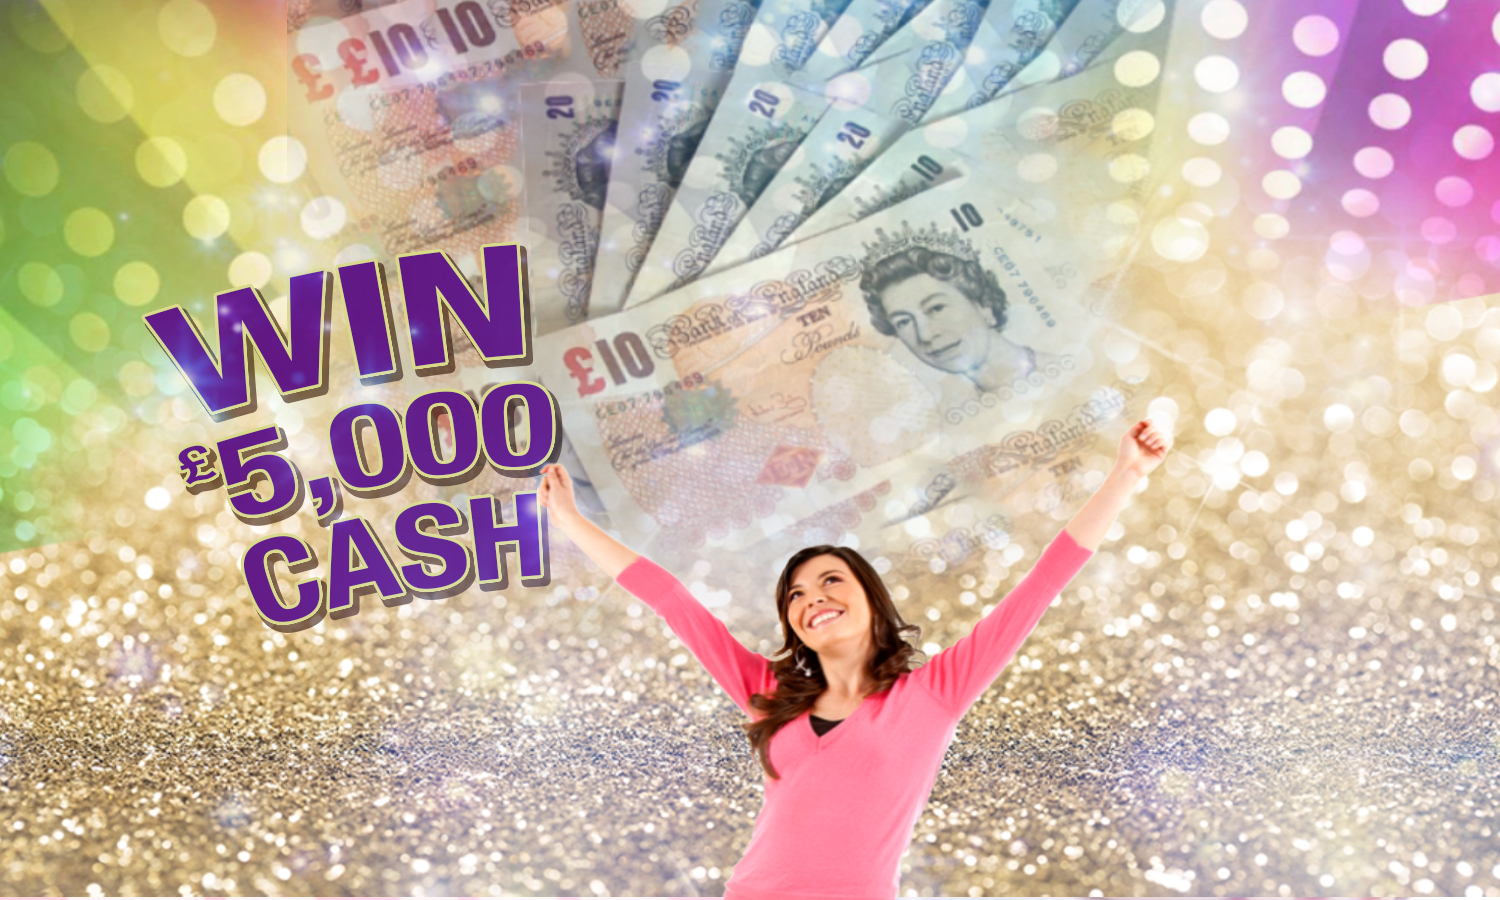 Win £5,000 Cash | Free Competitions | WINNERSVILLE co uk